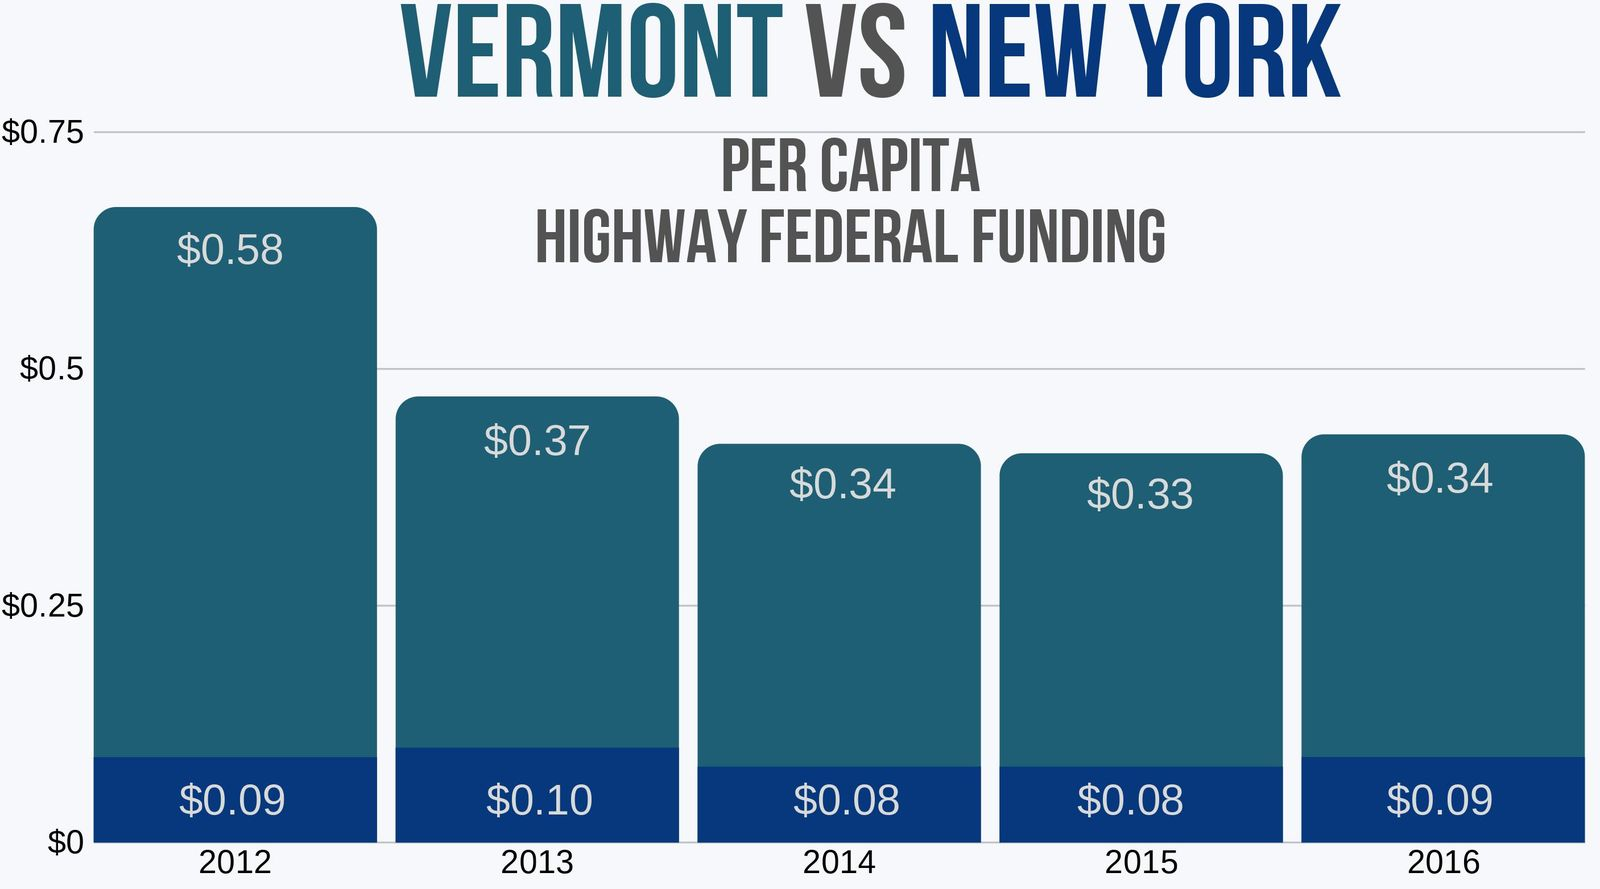 VT vs NY per capita highway federal funding 5 year trend